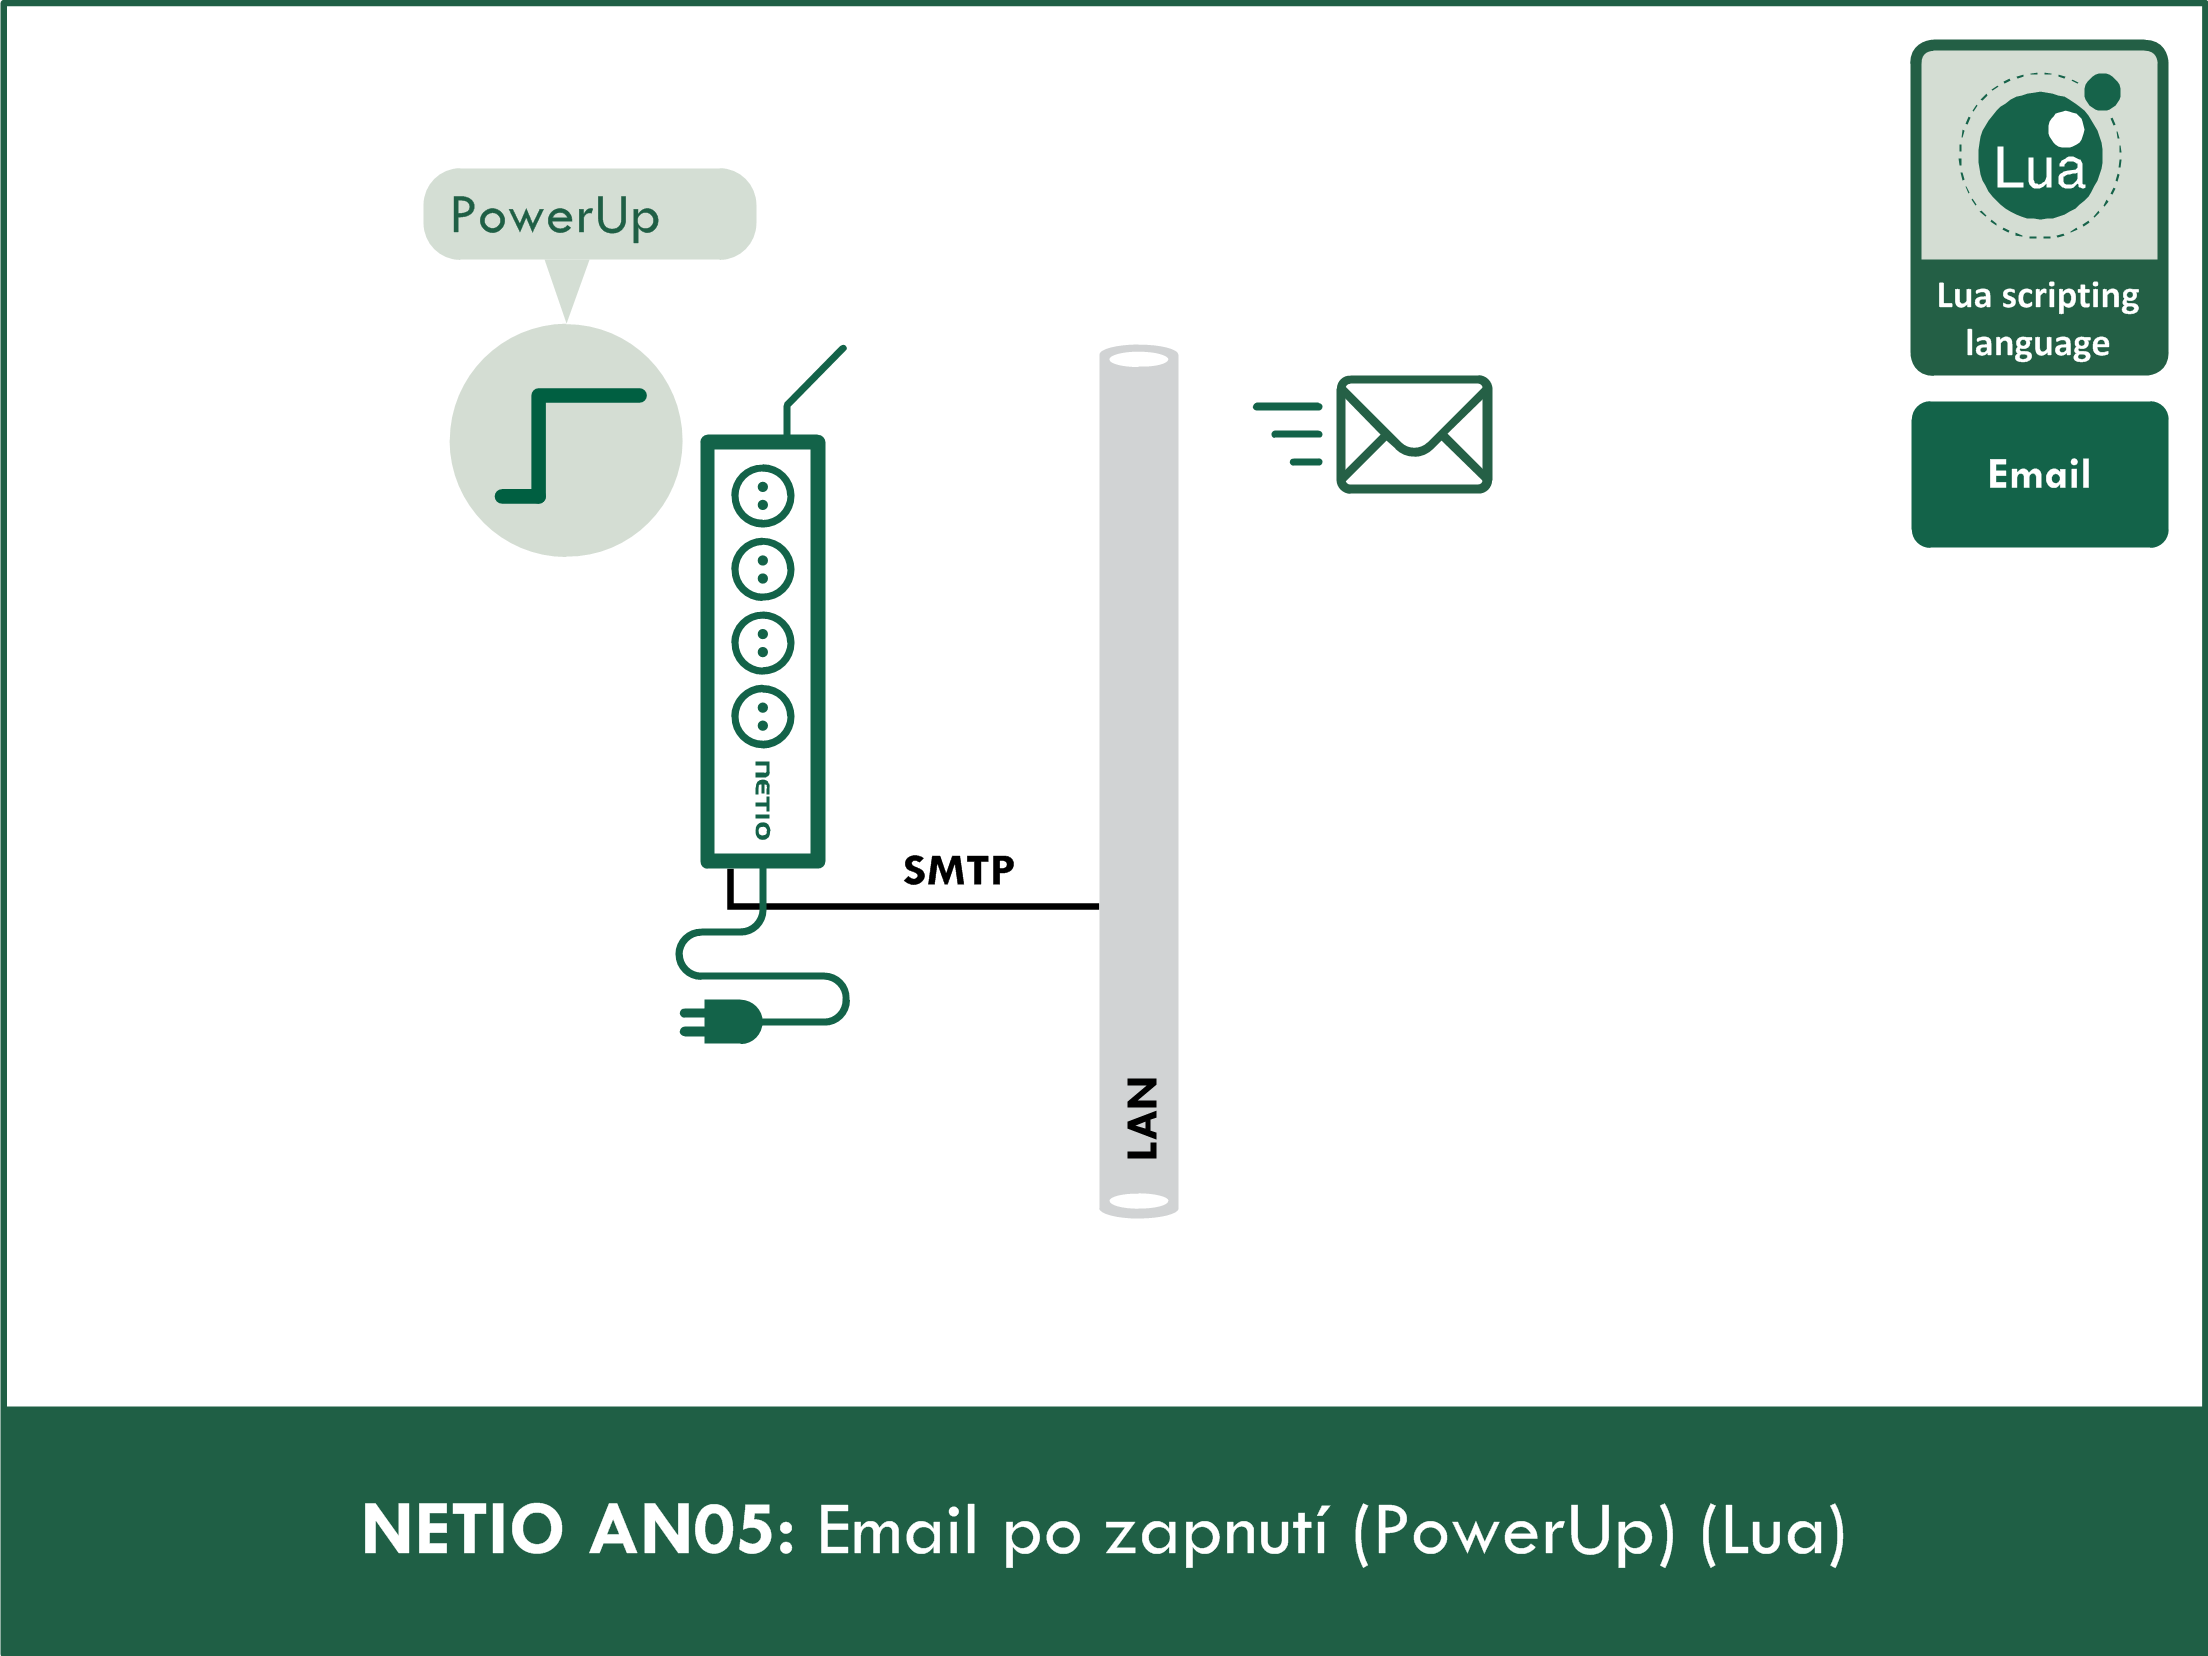 PowerUp email (Lua)